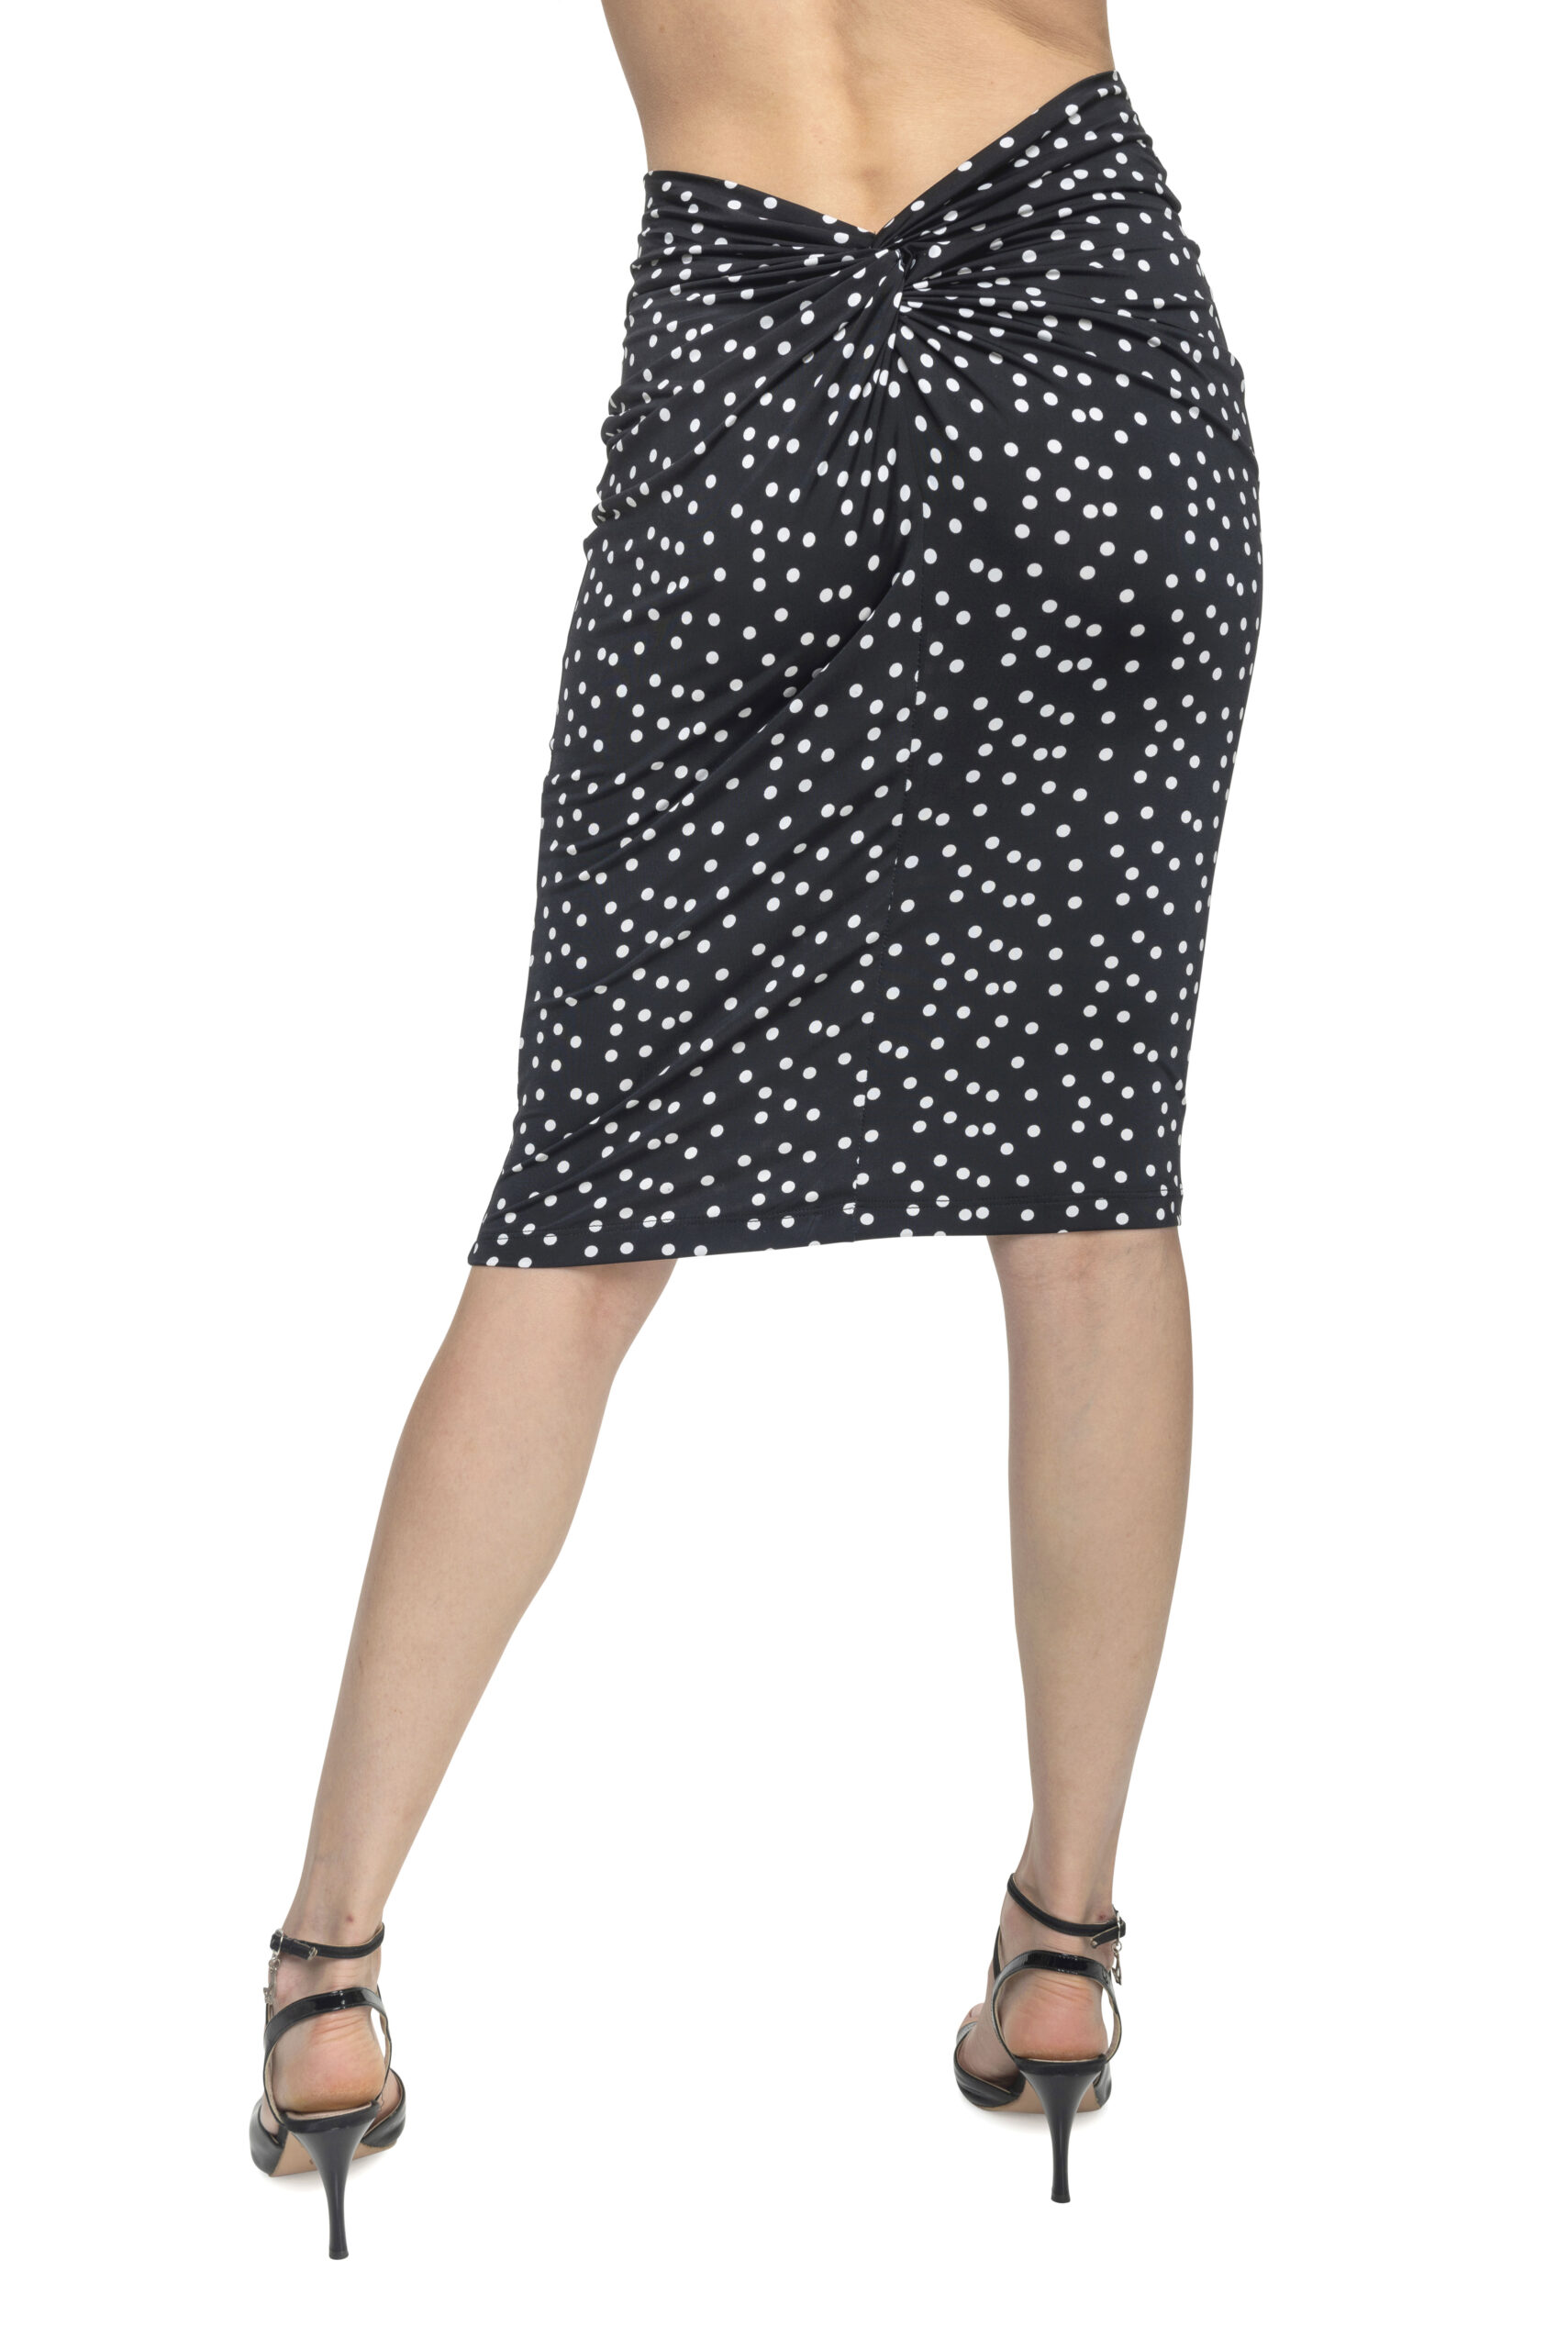 polka dots know tango skirt